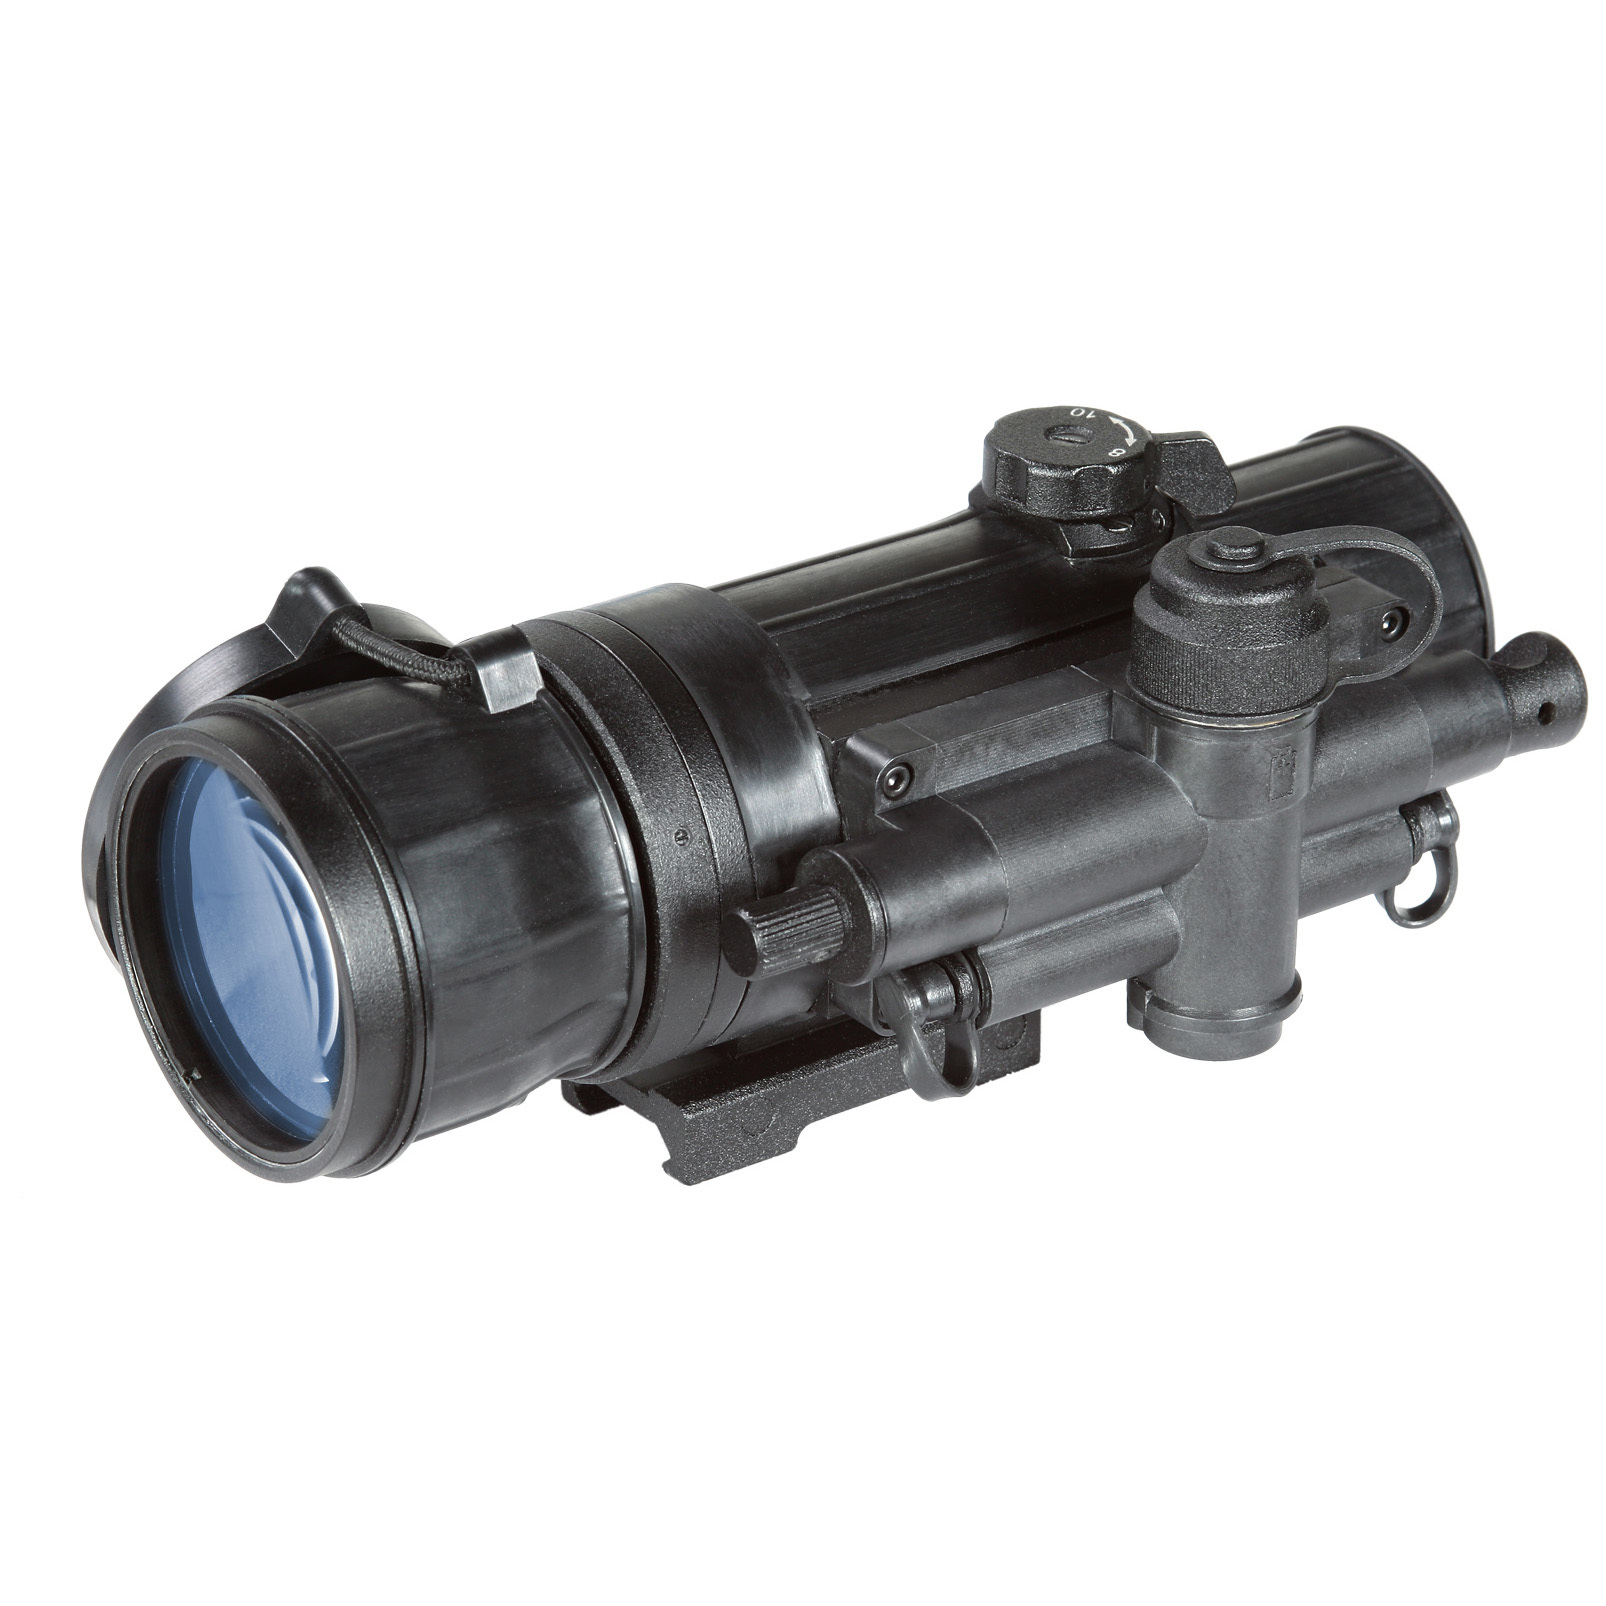 "Armasight CO-MR Gen 2+ ID MG Night Vision Clip-on System. As one of the most-advanced Night Vision systems commercially available, this Armasight CO-MR Gen 2+ ID MG Night Vision Clip-On System boasts incredible clarity, versatility and toughness whether you're part of the local police force, or simply looking to eliminate varmints from your property. No more switching optical enhancements once day turns to night... here, the Clip-On System attaches securely to the front of your existing scope! No more fussing with calibration and adjustments when you switch from one to the other, either! A detachable infrared illuminator brightens your view, and in case of a flashlight blast or other unexpected intensity change in ambient light, the bright light cut-off system protects the image intensifying tube from harm.Features:1X magnification Mounts in front of any daytime scope, no re-zeroing required Detachable long range IR illuminator Bright light cut-off system protects the image intensifying tube from harm Variable gain control Low battery indicator Includes wireless remote control Quick-release mount for easy mounting Mil-standard compliant Runs on 1 CR123A battery (included) or 1 AA battery (not included) Includes lens cap, battery adapter, light suppressor, lens tissue, carrying case, and Picatinny adapter Measures 3.2 x 3.2 x 7.1""l. Weighs 1.5 lbs Specifications:IIT generation: Gen 2+ ID MG Resolution: 47-54 lp / mm Exit pupil diameter: 21mm Lens system: F1: 1.2, 80mm 12.6 degrees F.O.V. Range of focus: 10 to infinity Controls: direct Battery life: 60 hours (CR123A) or 30 hours (AA) Environmental rating: Waterproof Operating temperature: -40 degrees to 122 degrees F. - $1,979.99"